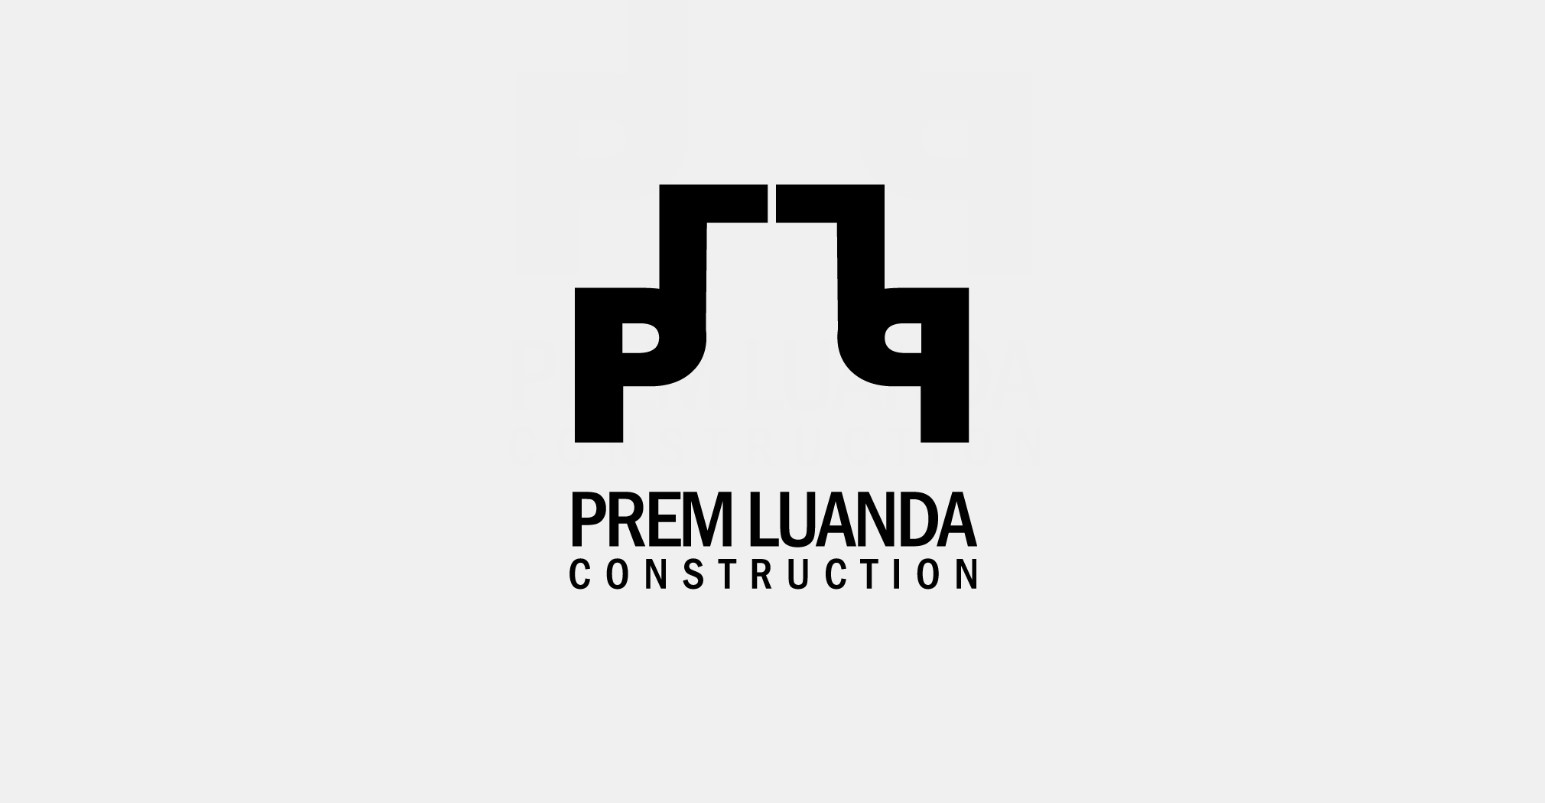 Logo design for Prem Luanda Construction